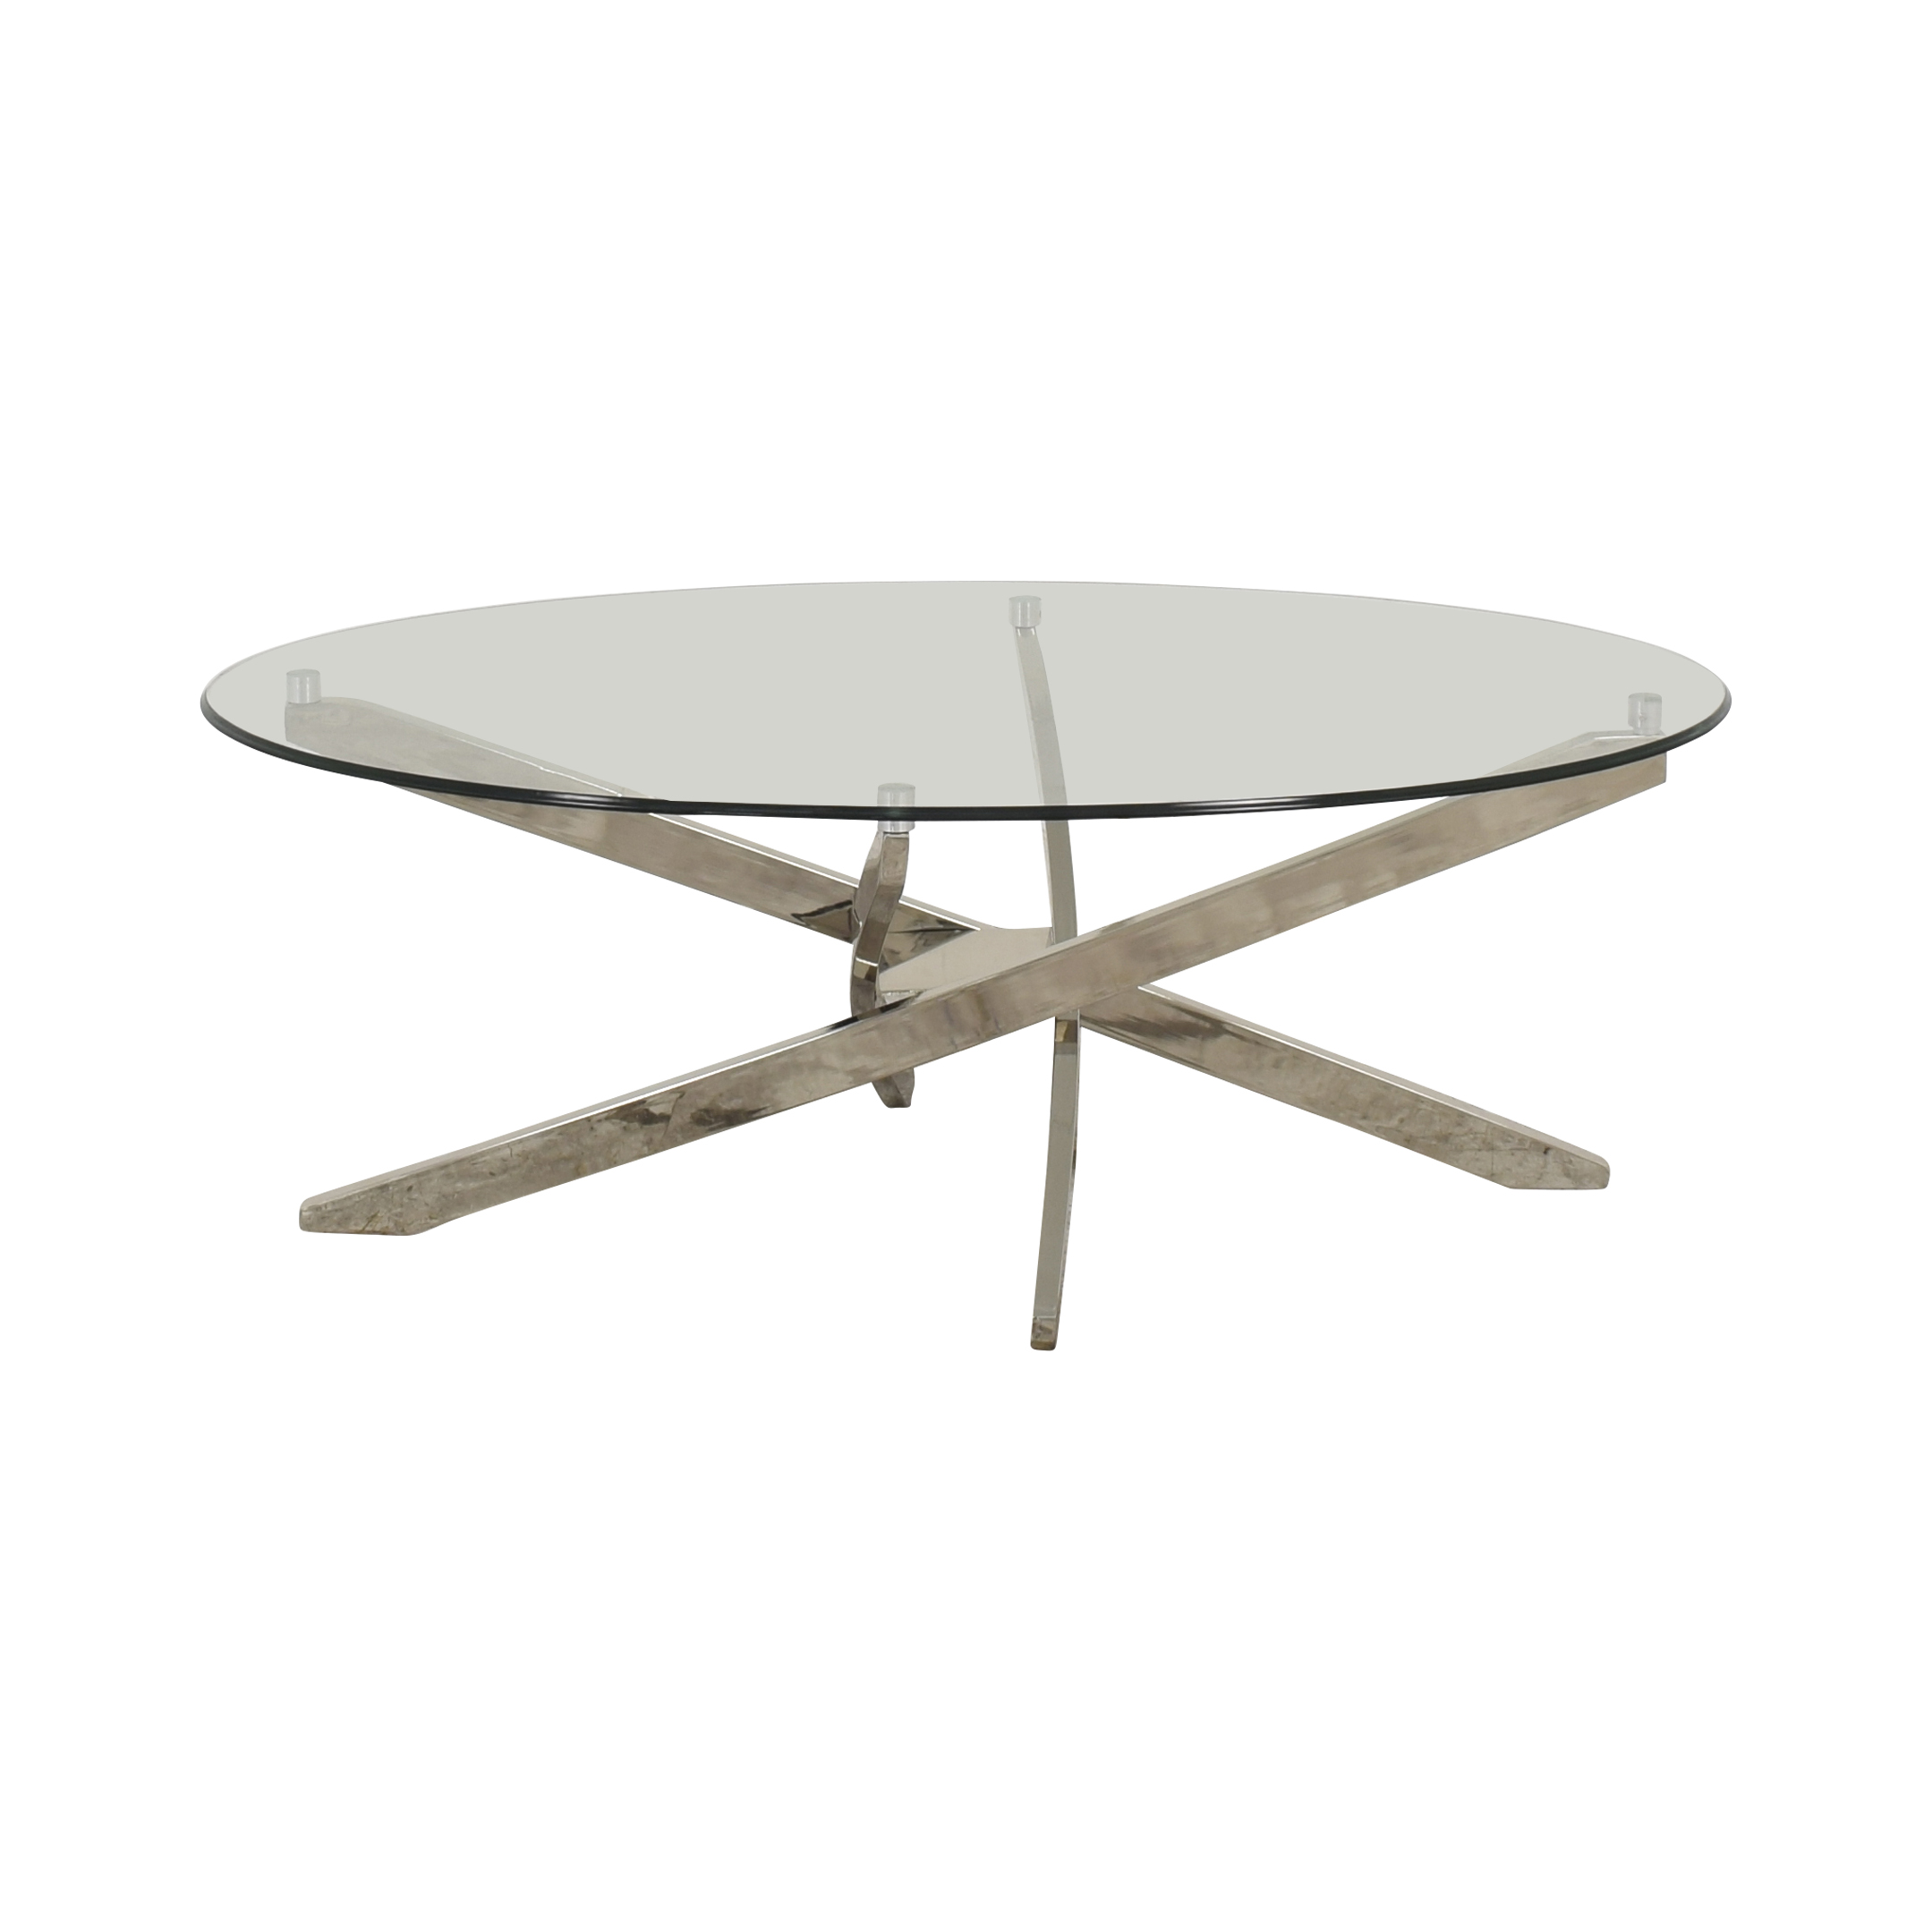 - 30% OFF - Magnussen Home Magnussen Zila Oval Coffee Table / Tables